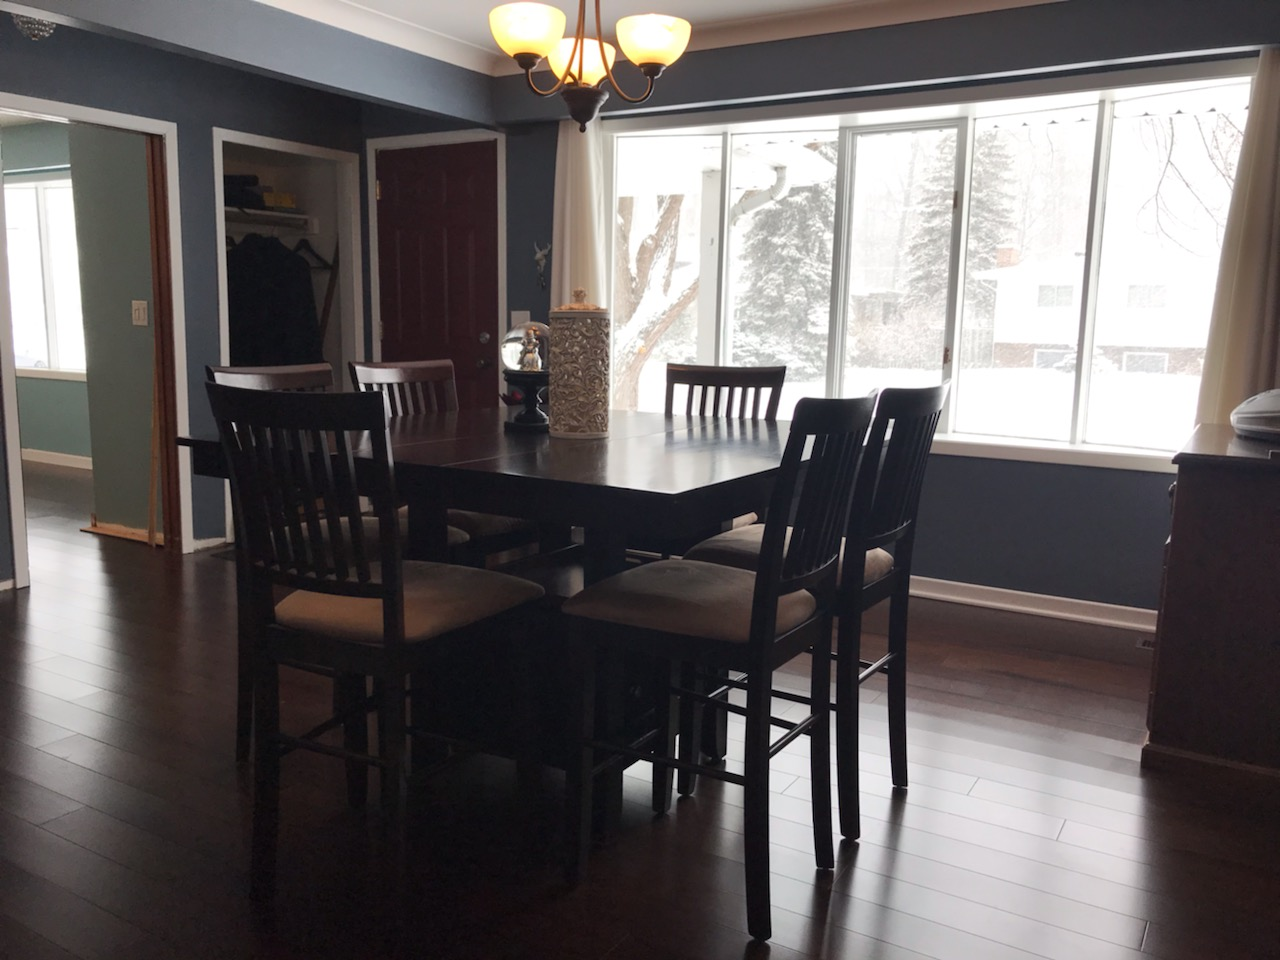 BEAUTIFULLY FURNISHED AND UPDATED RANCH WITH GOURMET KITCHEN IN LASALLE